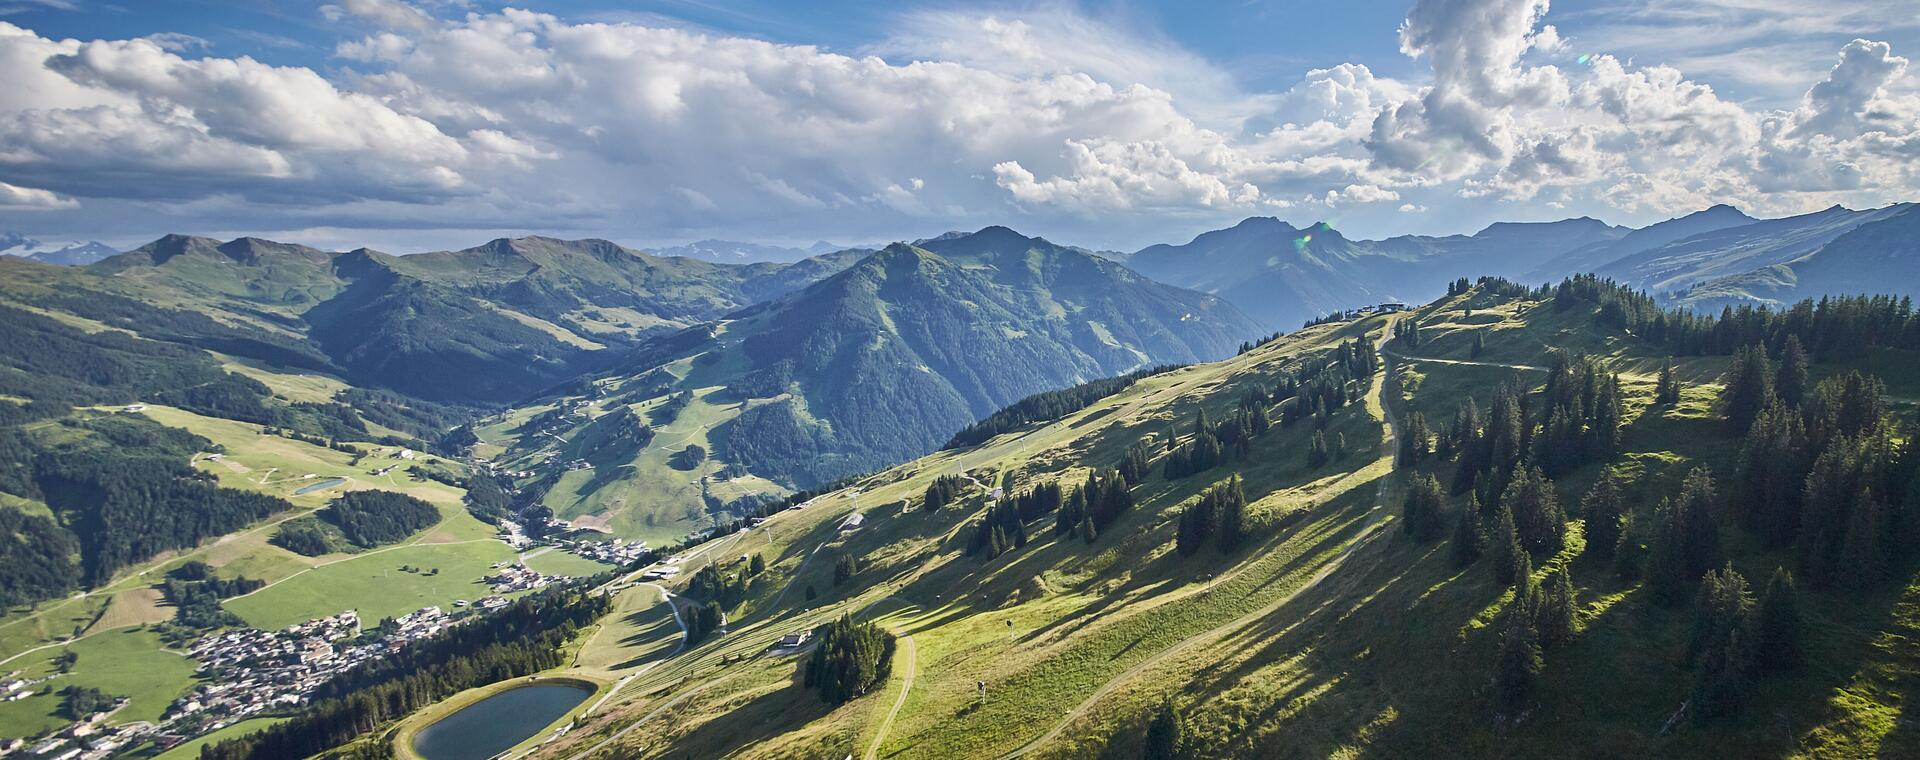 summer holiday in the Hohe Tauern National Park | © saalbach.com, Daniel Roos